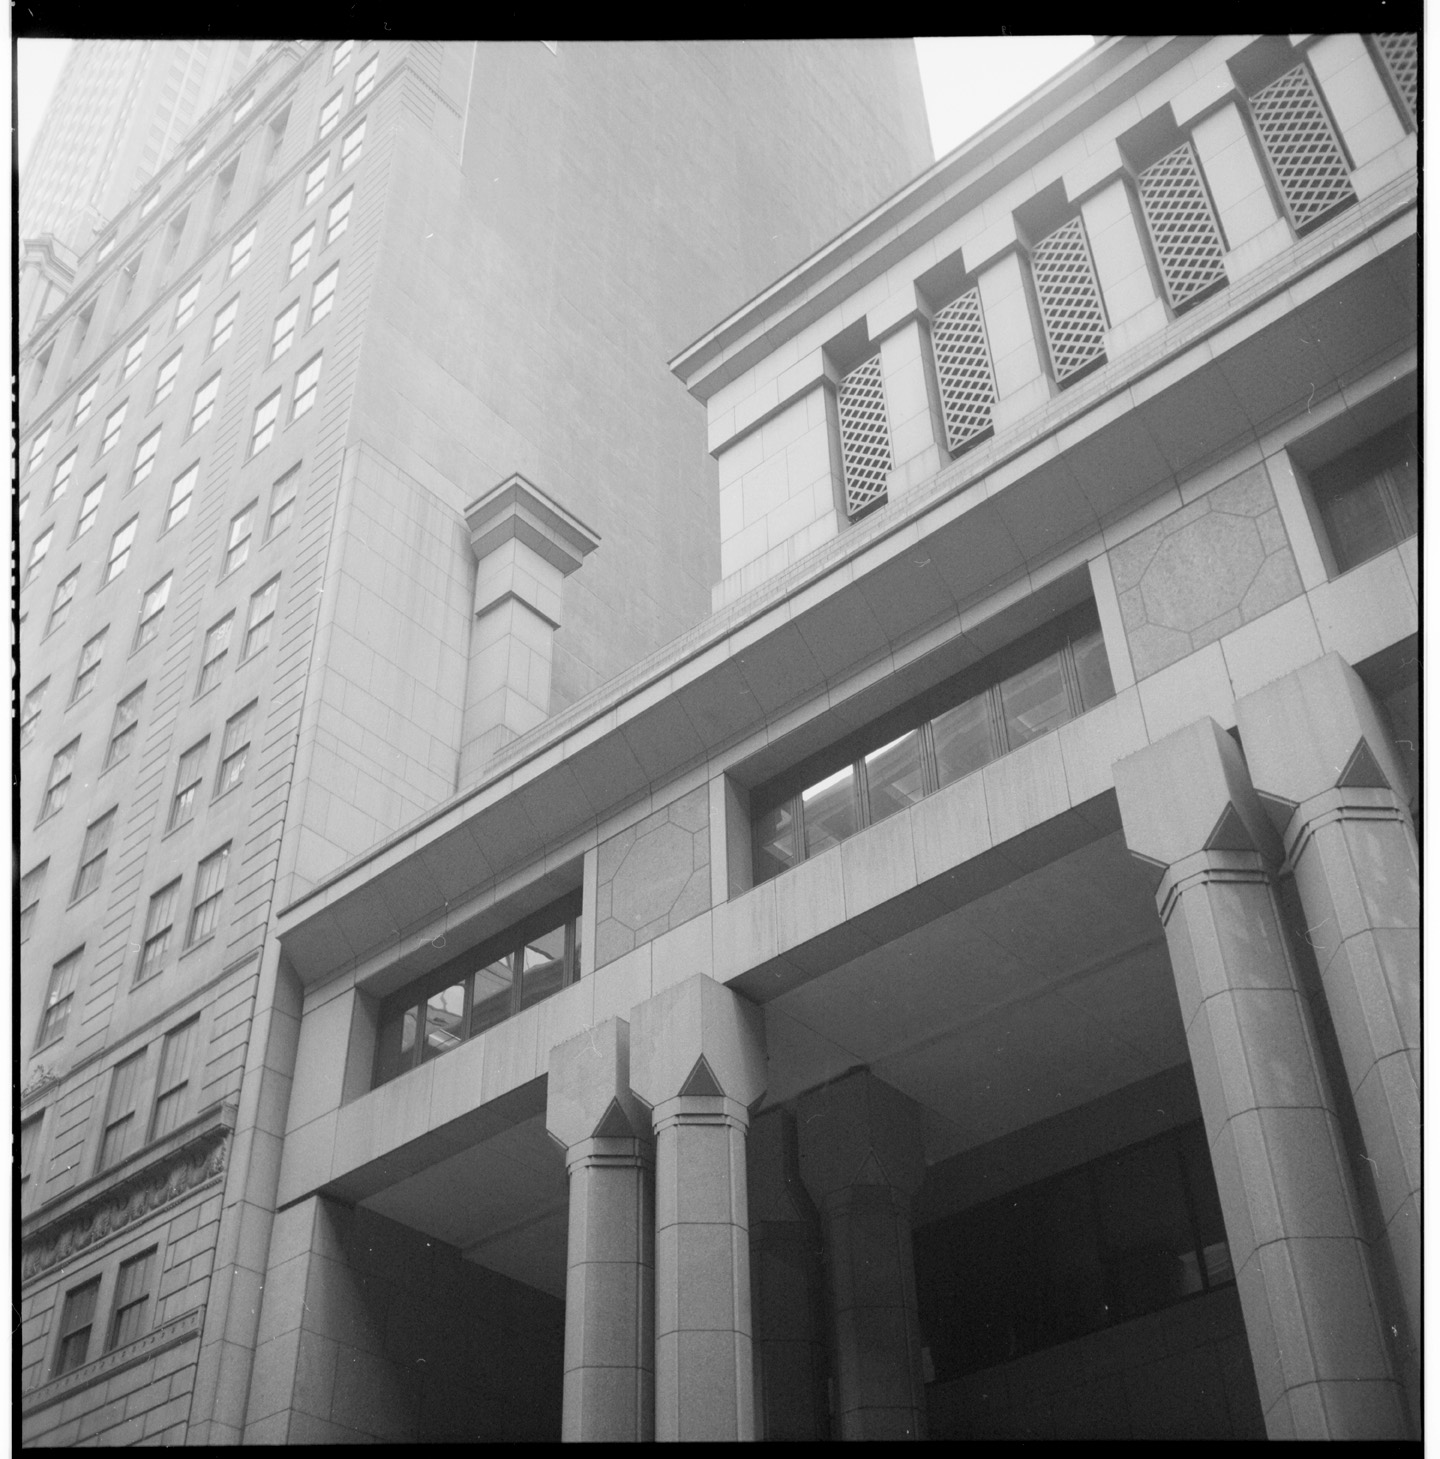 Building detail, Bank of New York